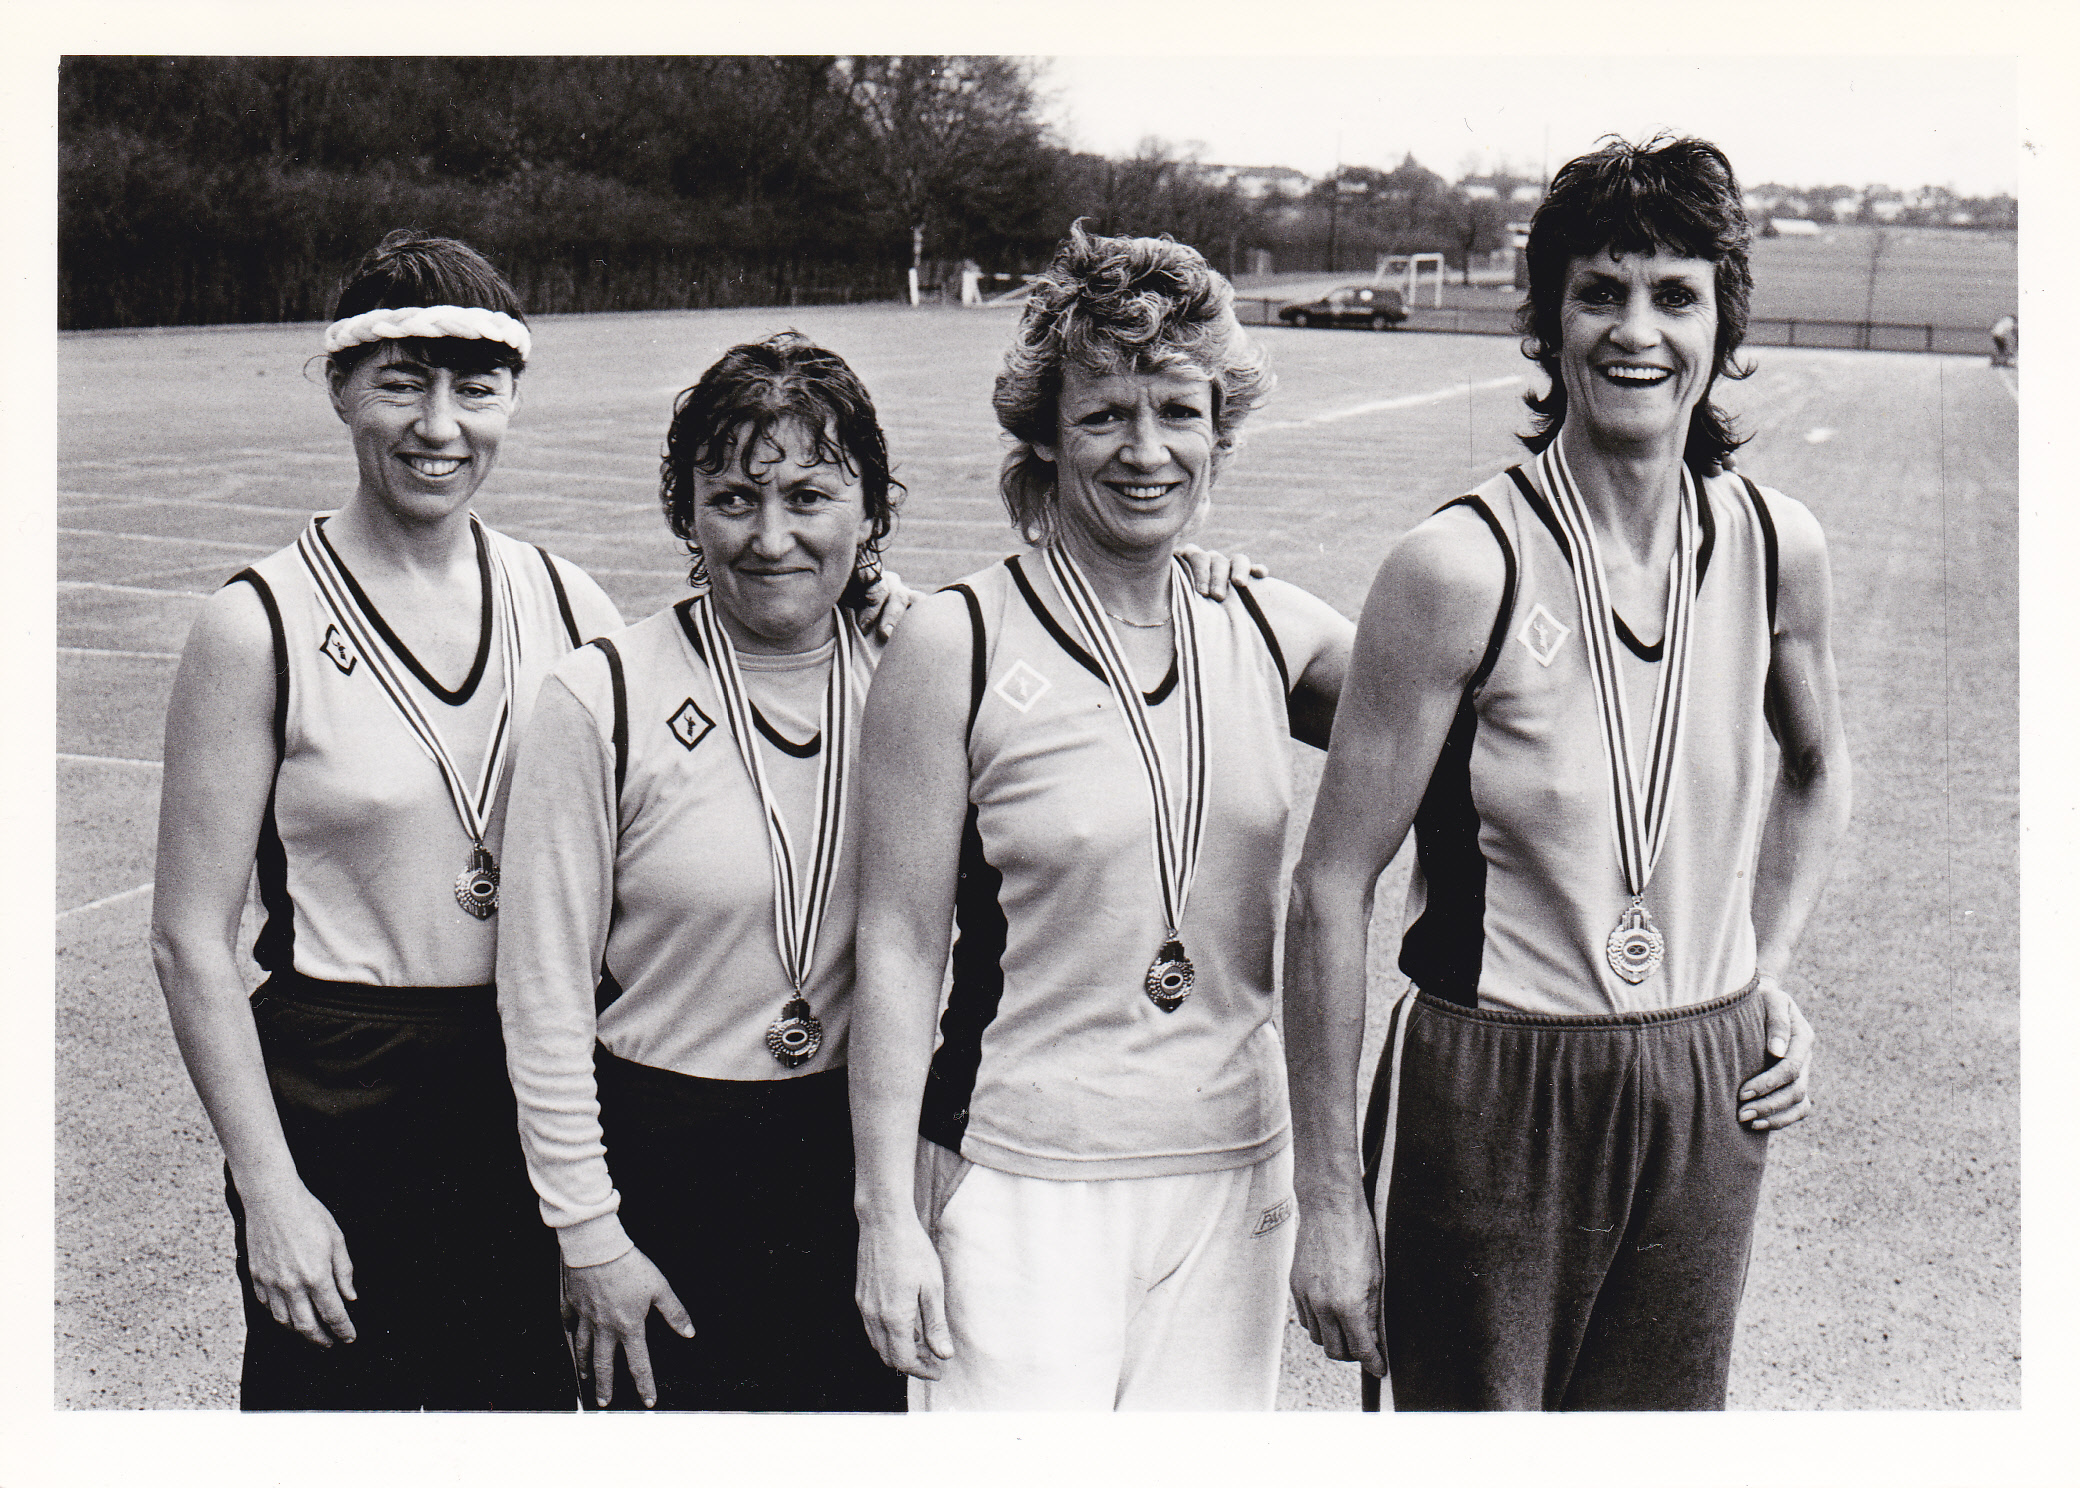 gallery/pictures/images/Some from the past .../Bromley Ladies' WR relay team 1986_0001.jpg